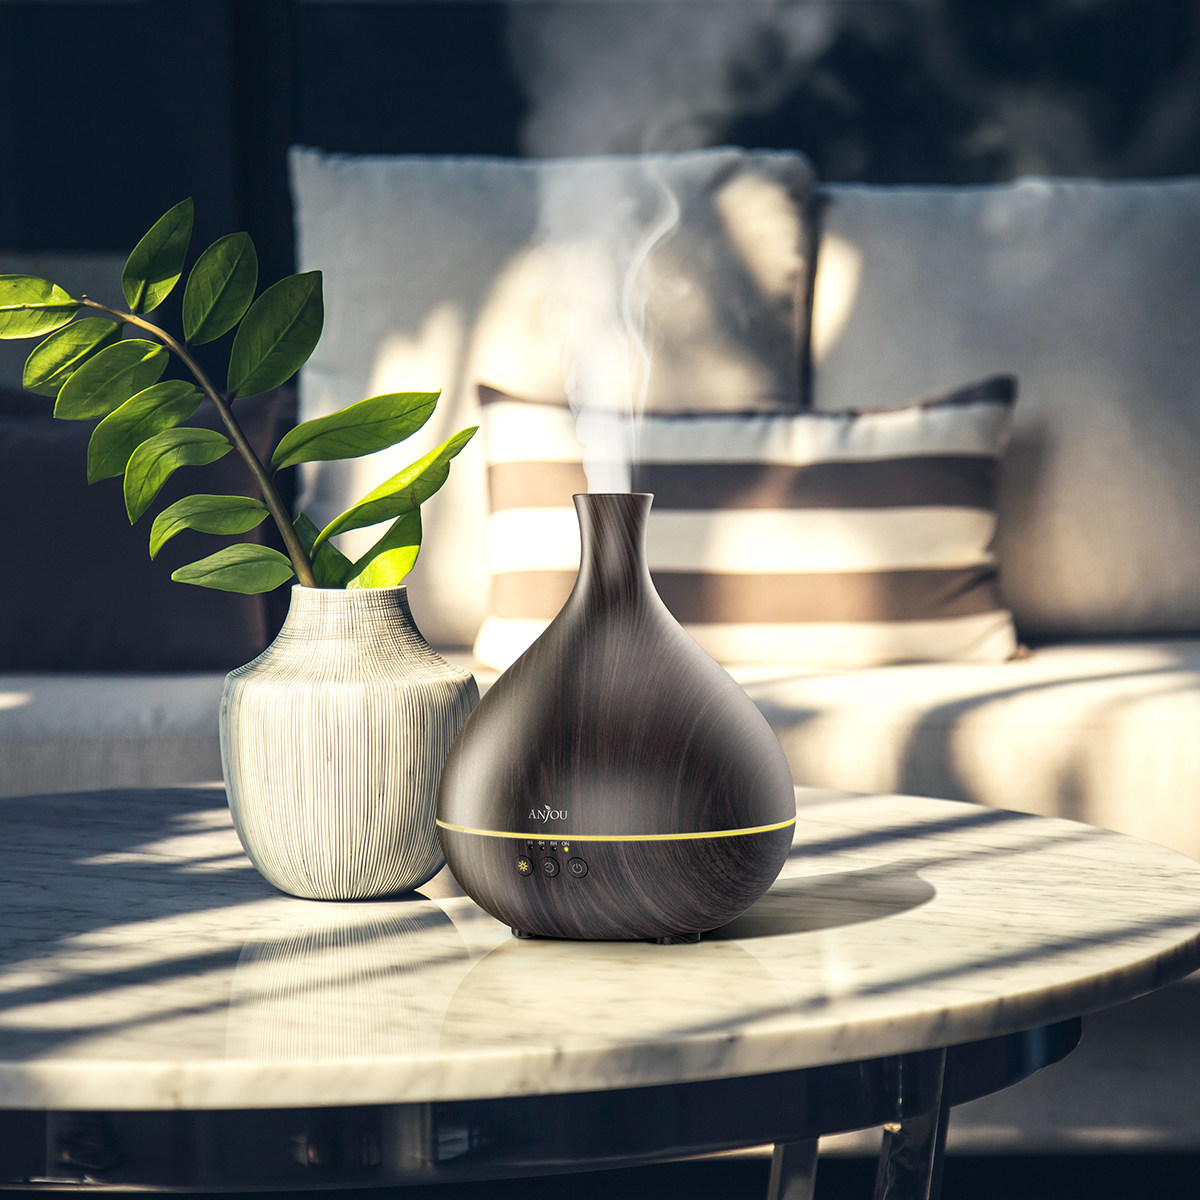 Velsete Anjou Launches Industry's Longest and Most Consistent Aroma Diffuser AE-86